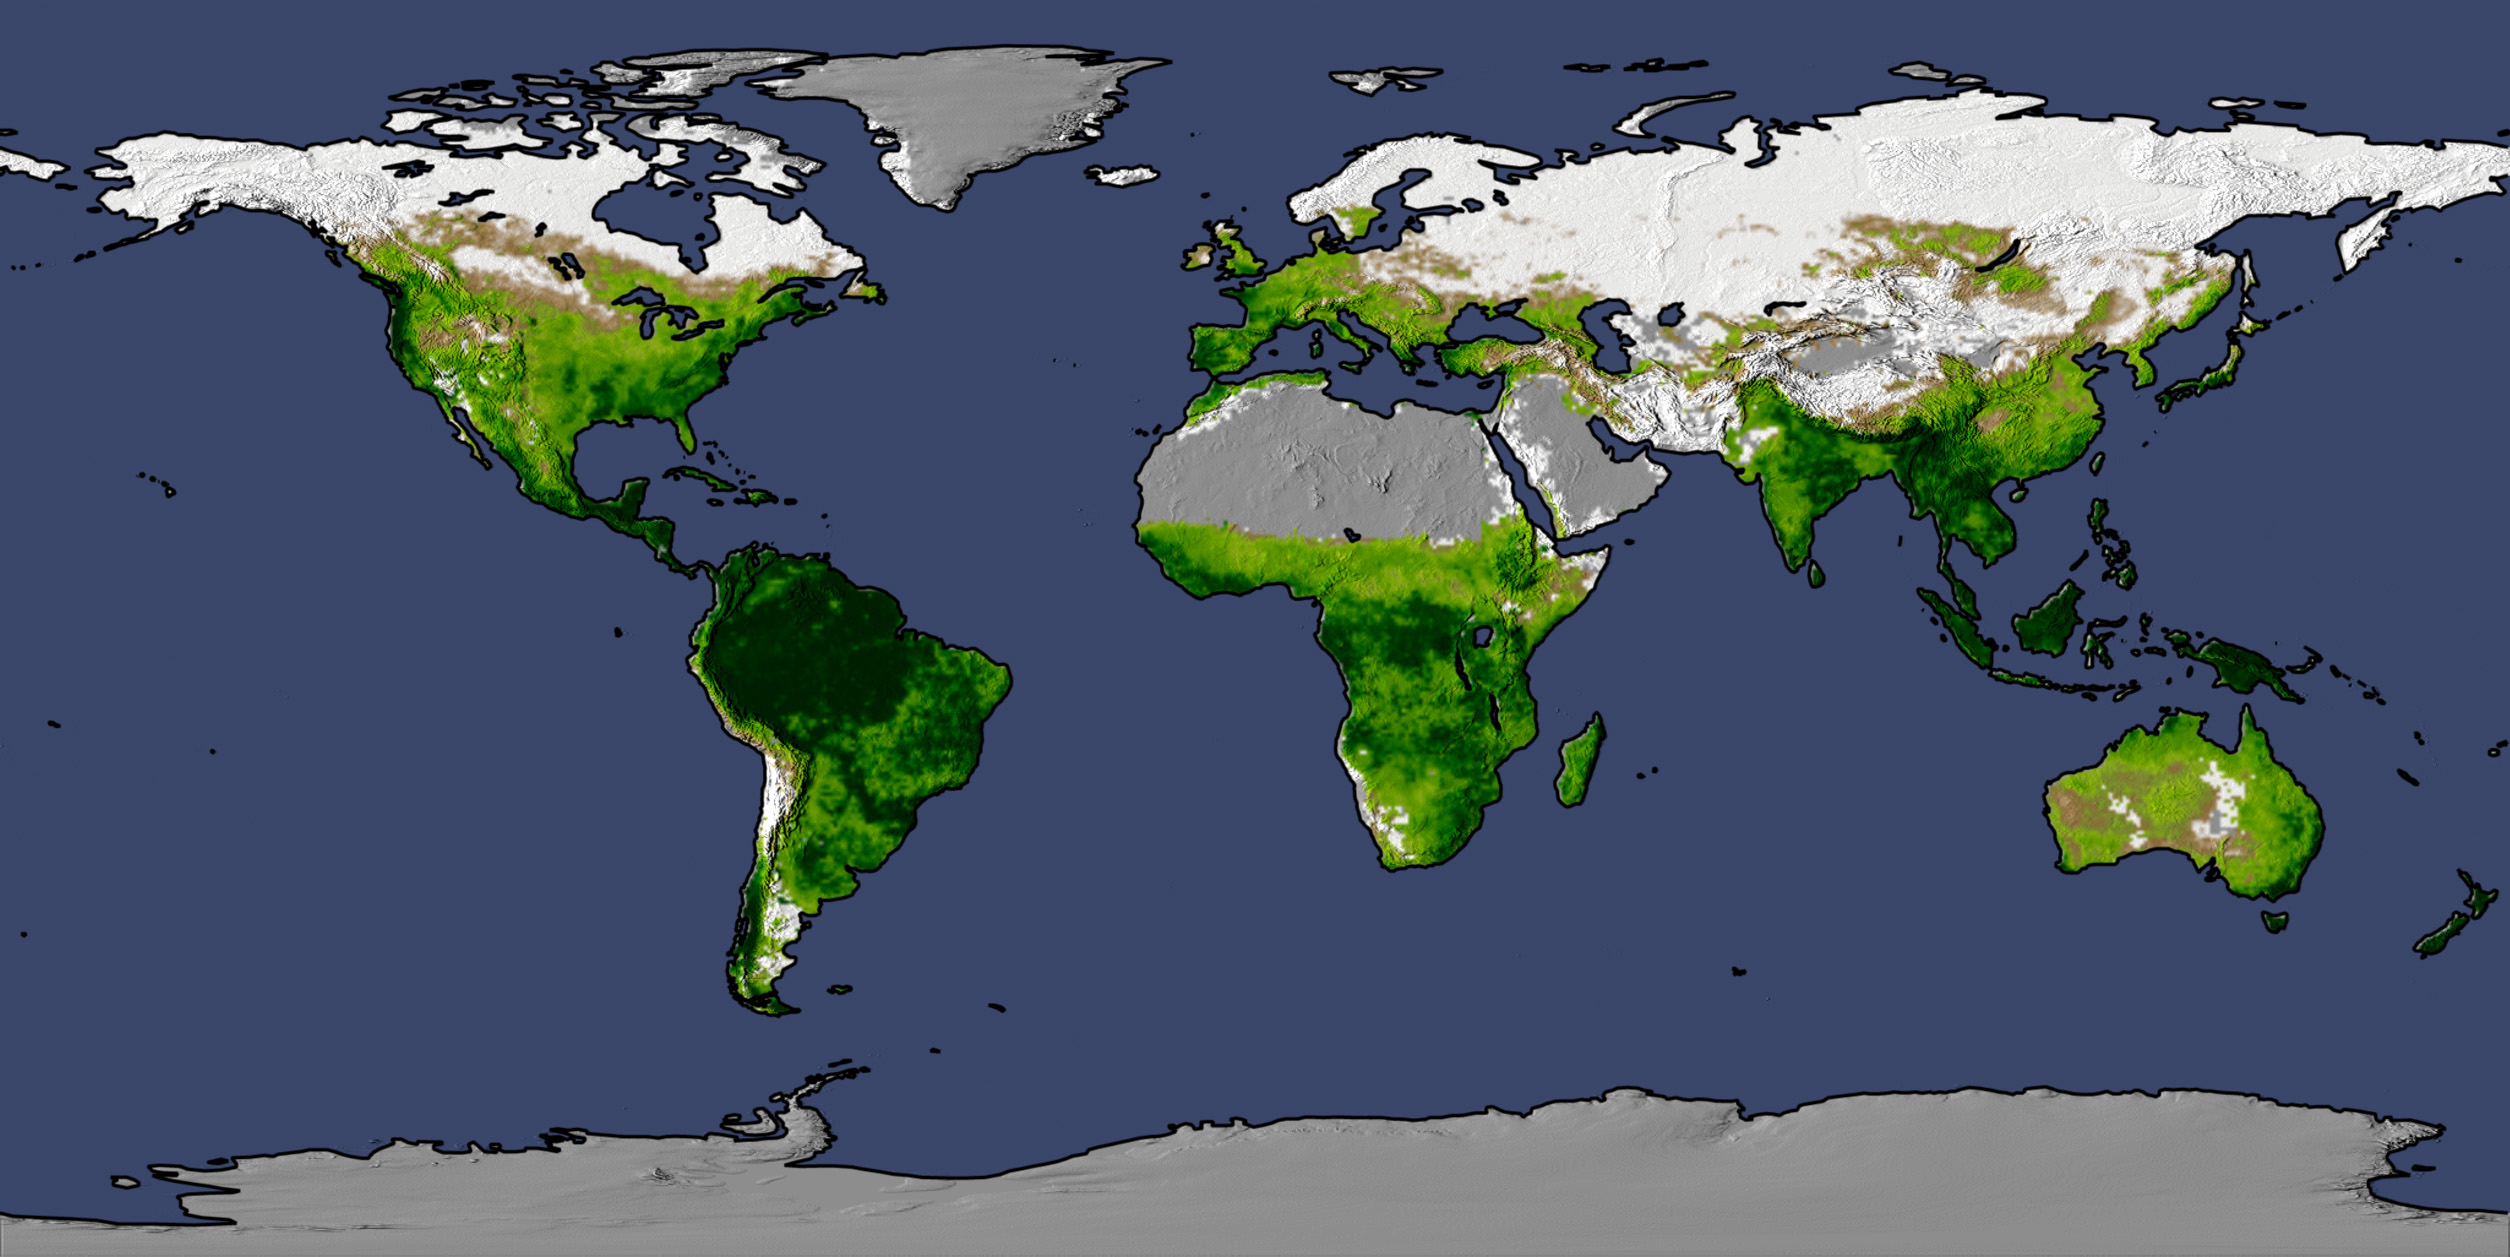 Global garden gets greener high resolution images large publicscrutiny Image collections